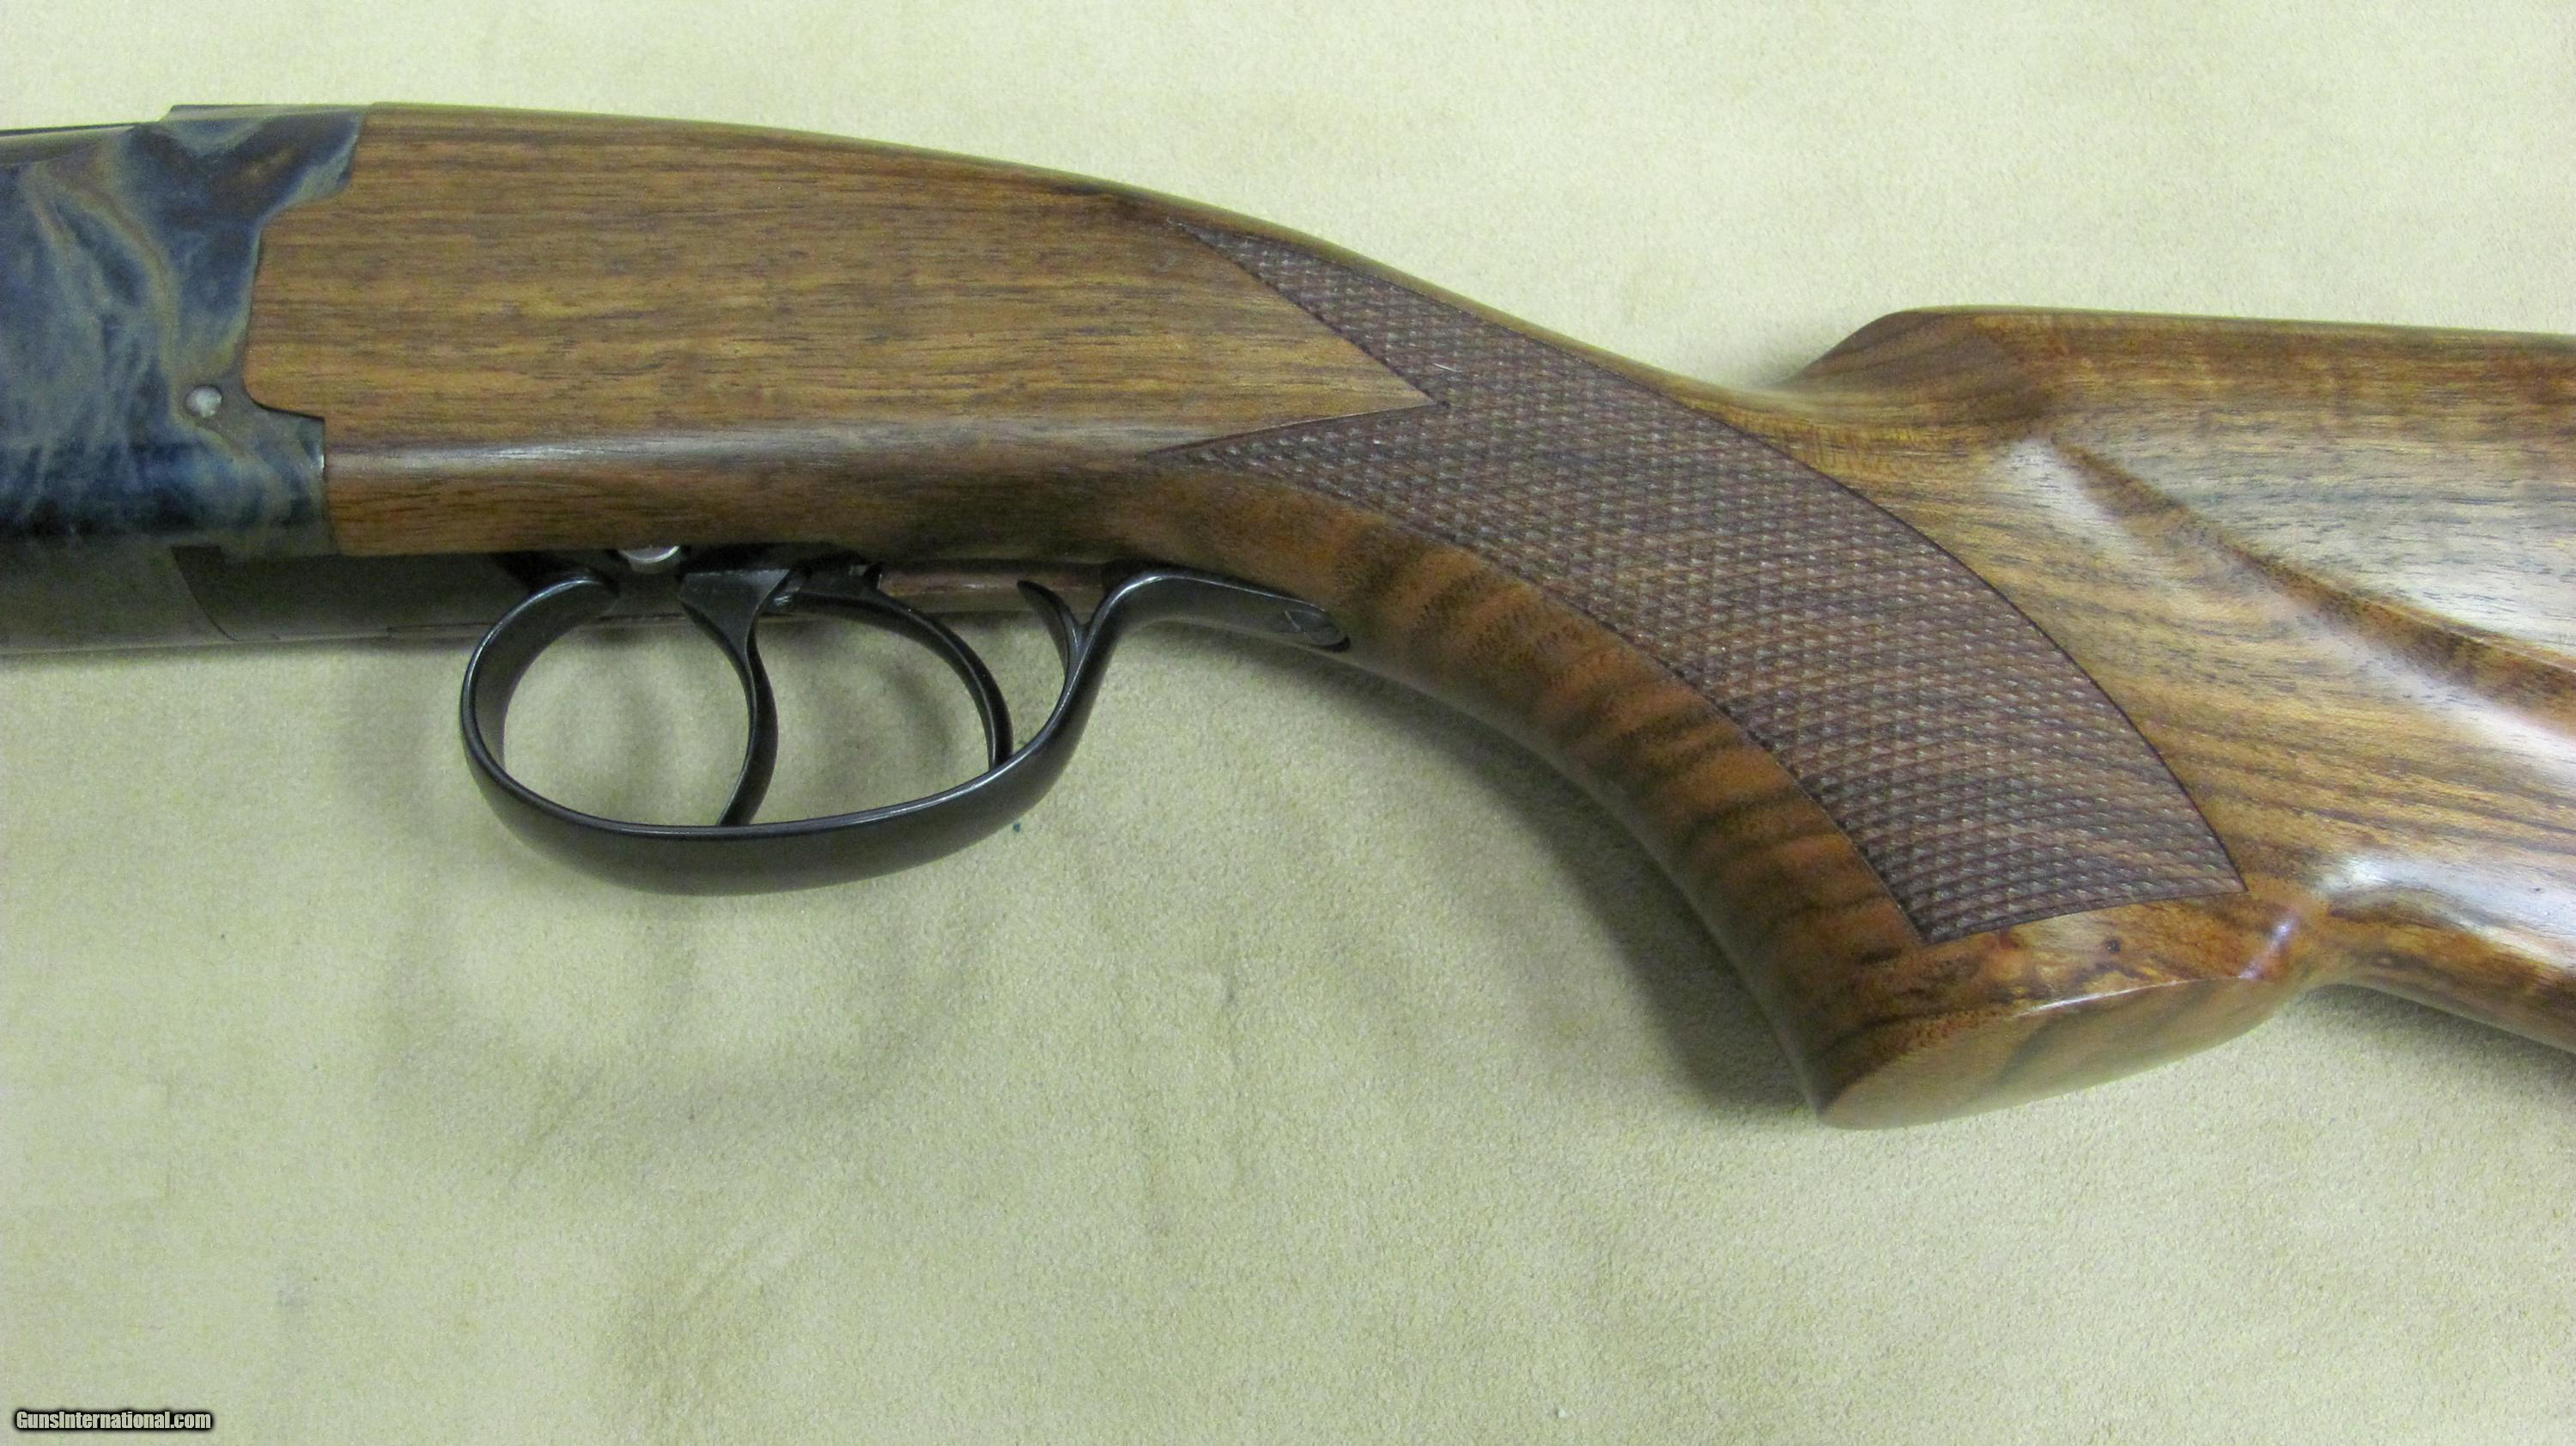 Verney Carrone Over/Under Double Rifle Sagitaire Model 9 3x74R